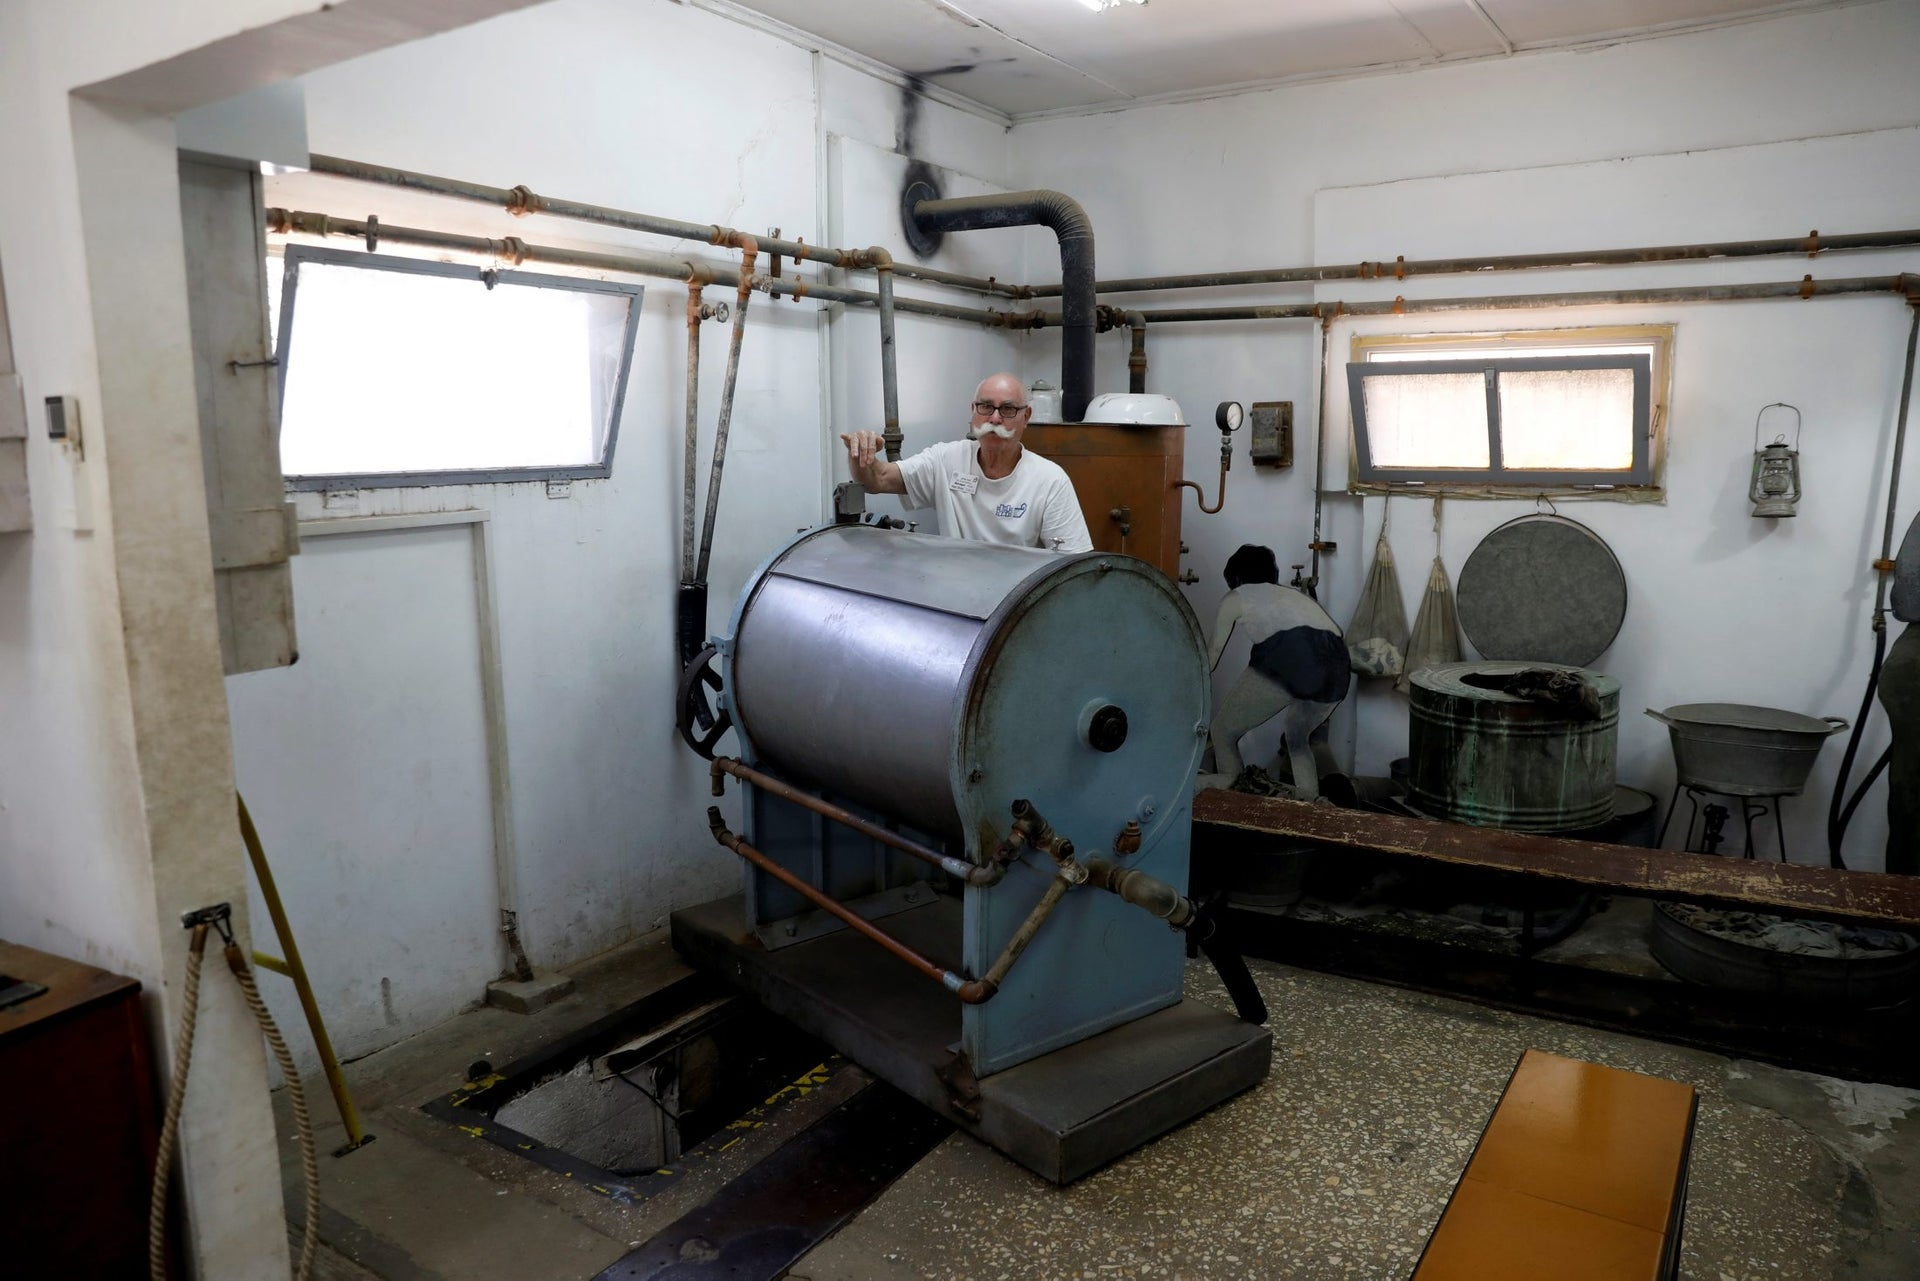 A man stands next to an industrial washing machine which hides one of the entrances to the Ayalon Institute, a factory for the production of 9mm bullets for the Sten submachine gun that was secretly built in 1945 by Jewish paramilitary group Hahagana during the British Mandate, in Rehovot, Israel, June 14, 2018.